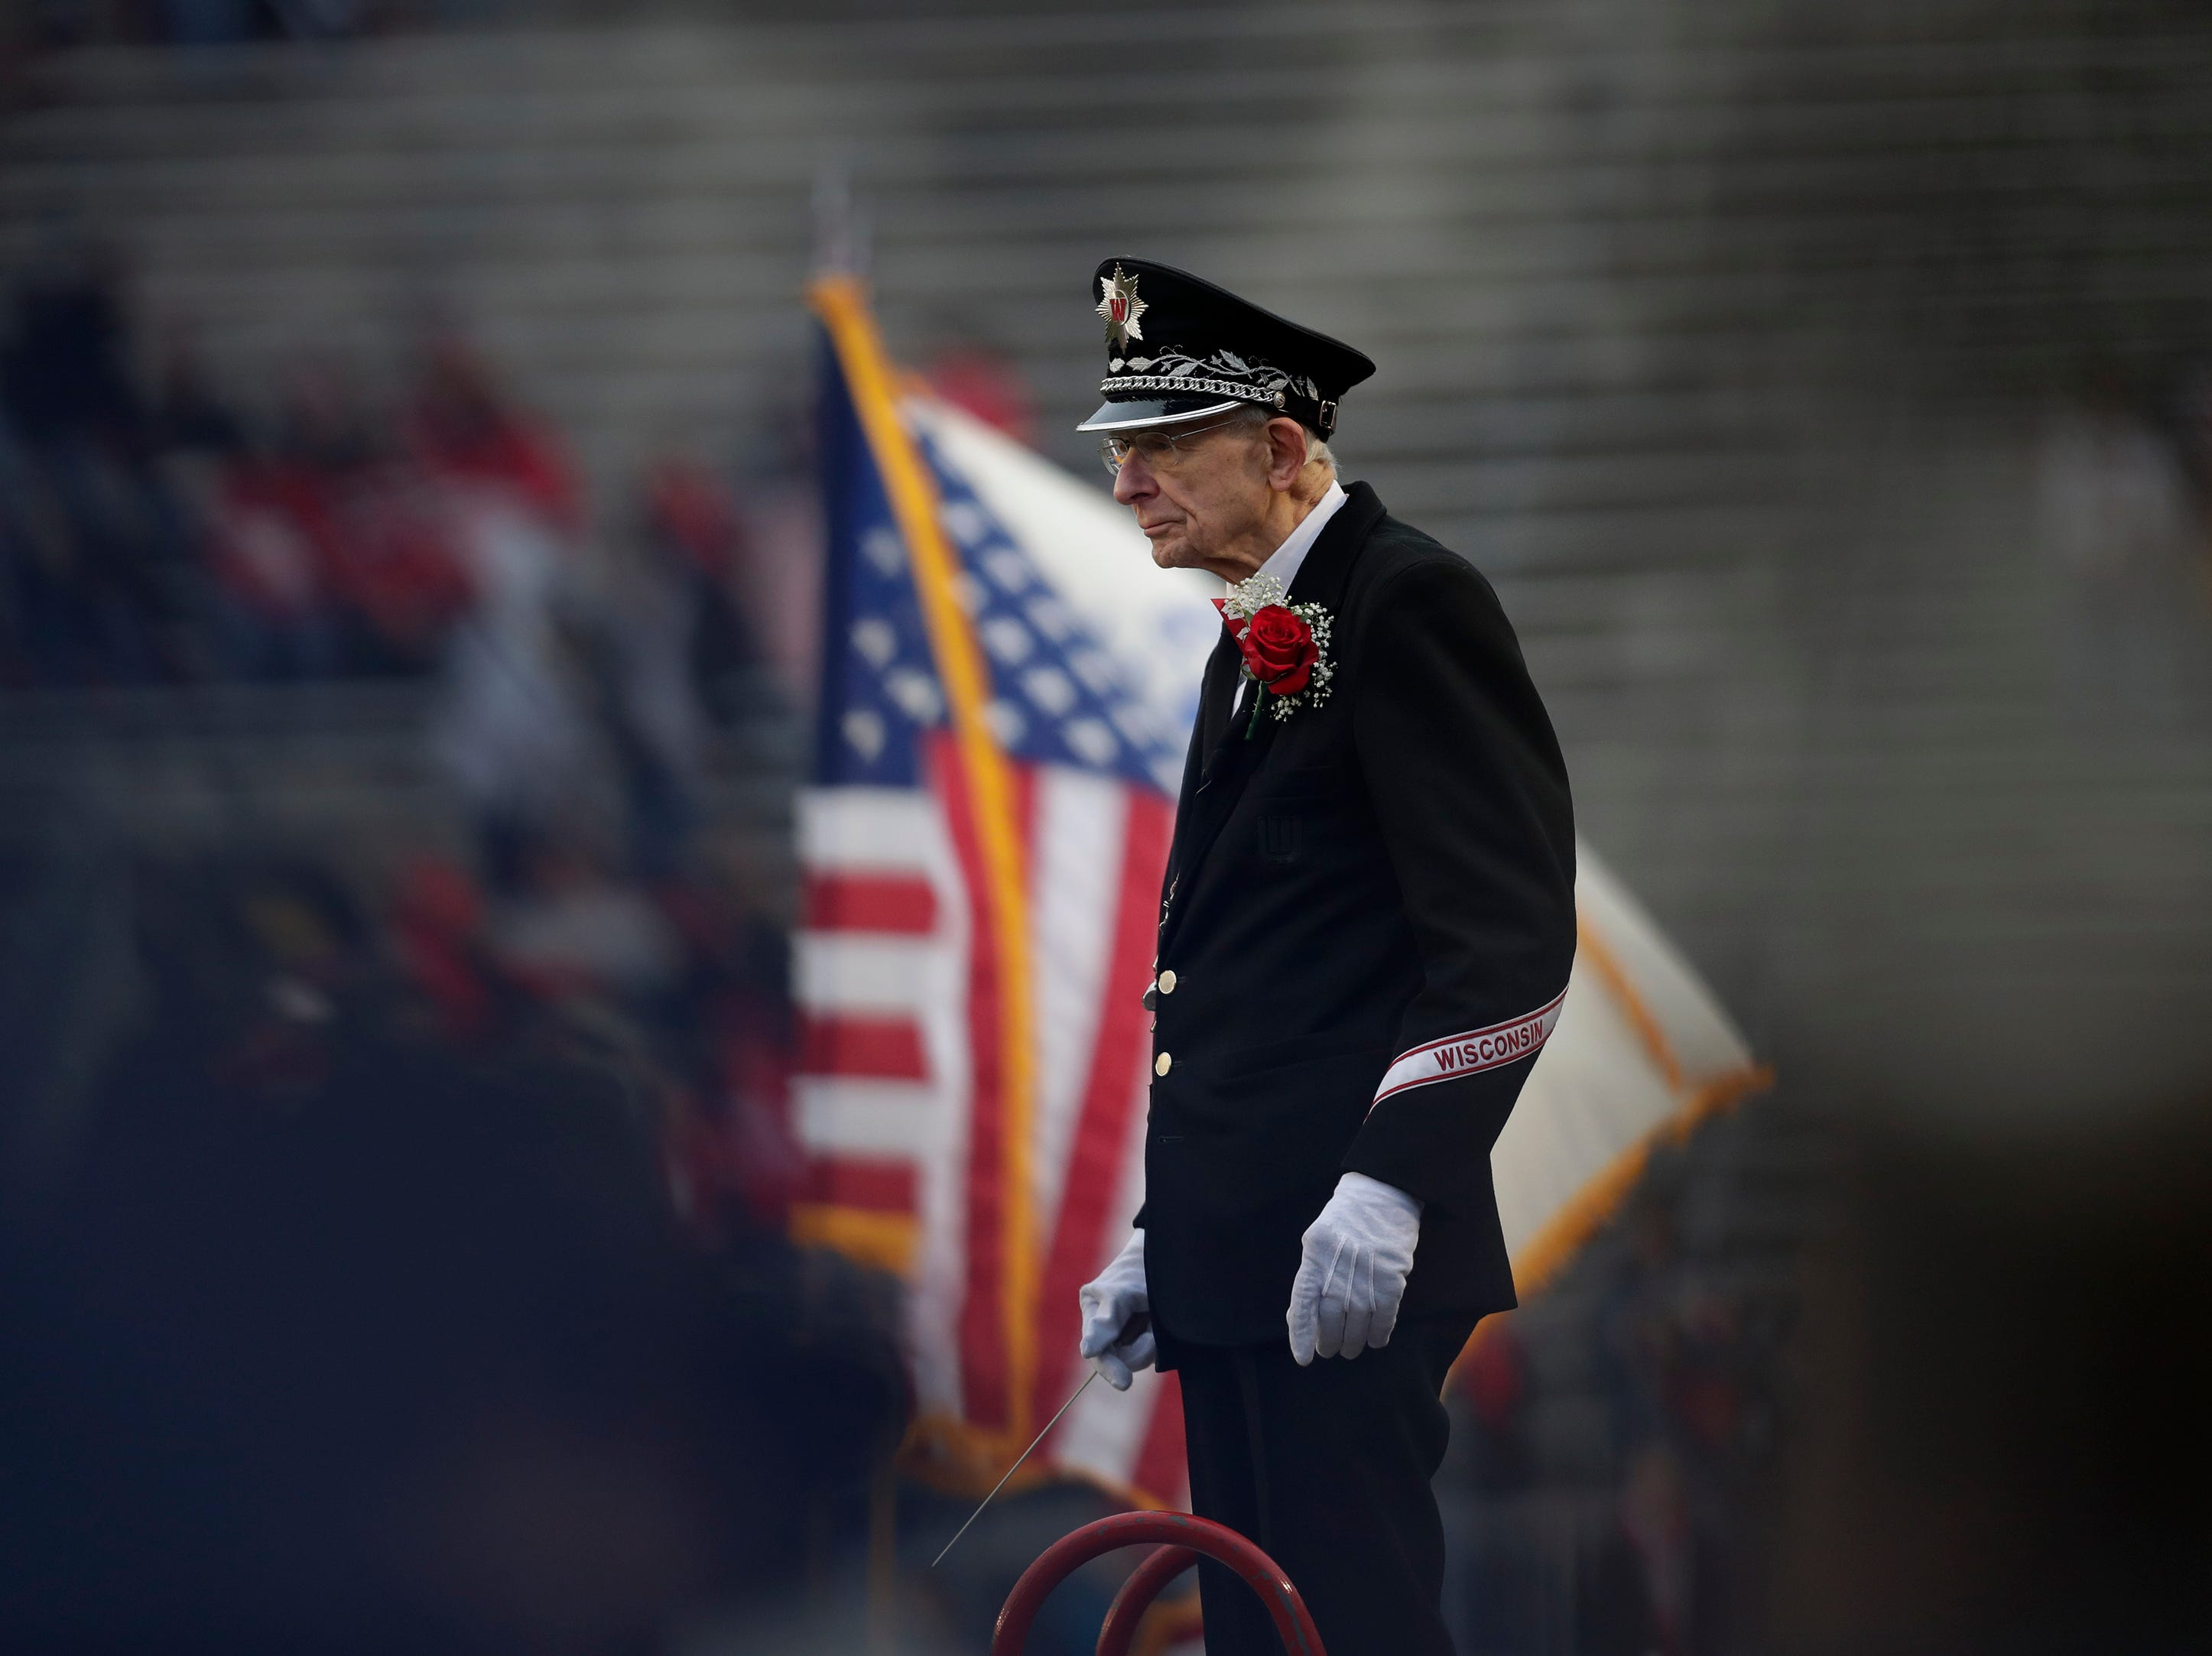 University of Wisconsin Marching Band directorMichael Leckrone leads the band prior to the start of the game against Minnesota Saturday, November 24, 2018, at Camp Randall Stadium in Madison, Wis. Dan Powers/USA TODAY NETWORK-Wisconsin